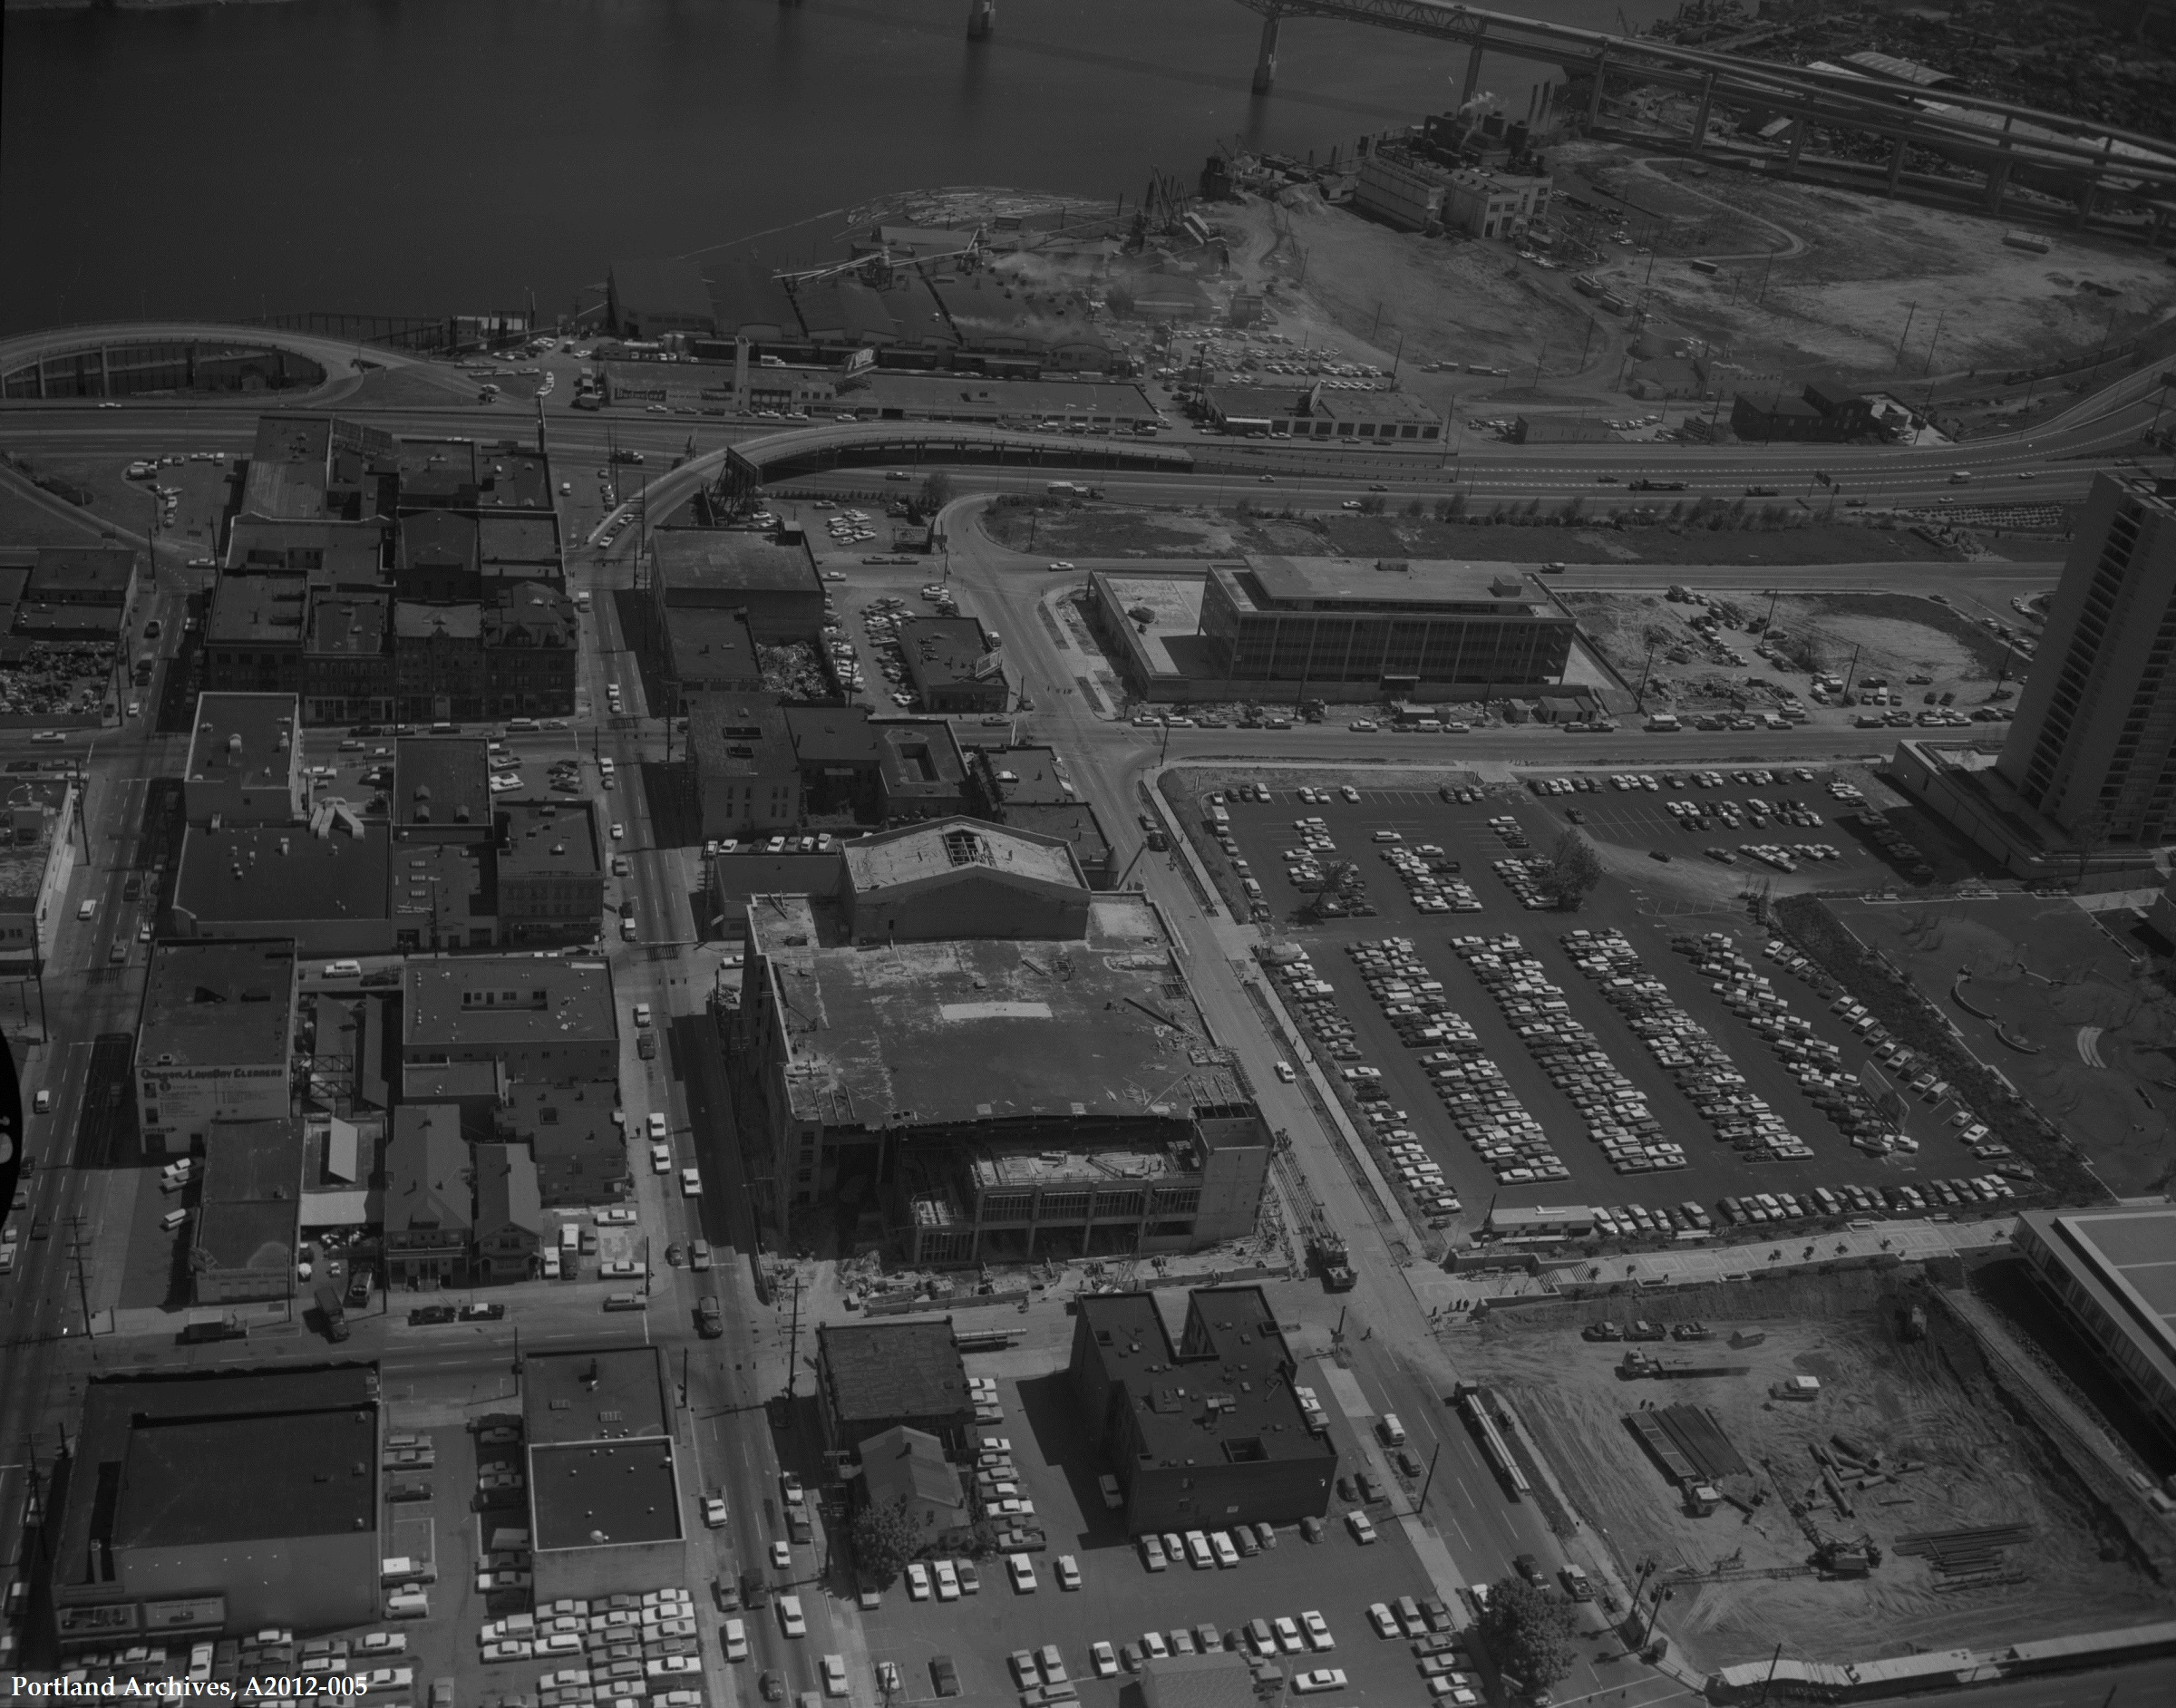 Civic Auditorium and surrounding area  includes view of Willamette River, May 8, 1967: A2012-005